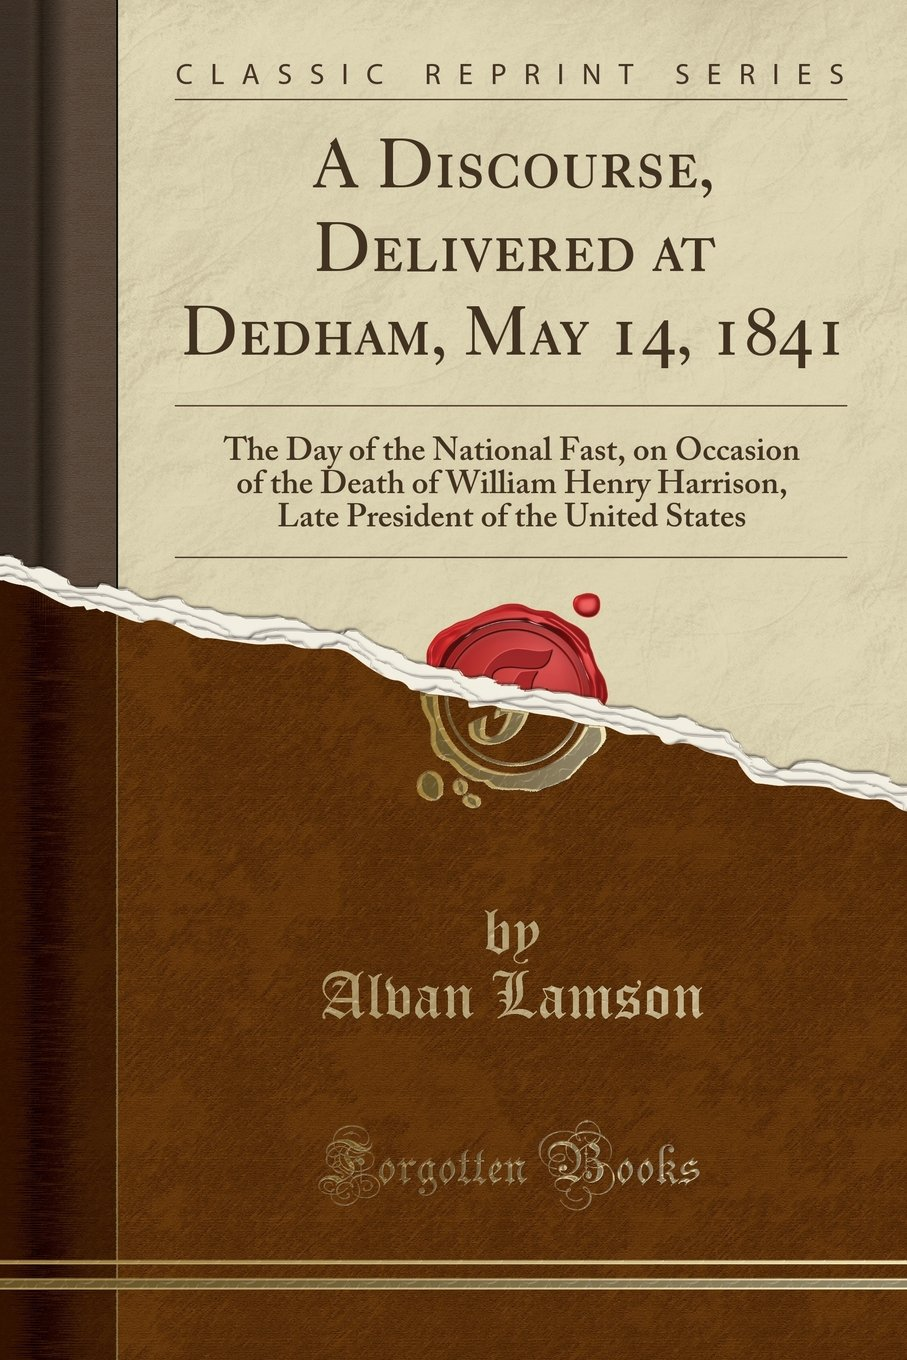 A Discourse, Delivered at Dedham, May 14, 1841: The Day of